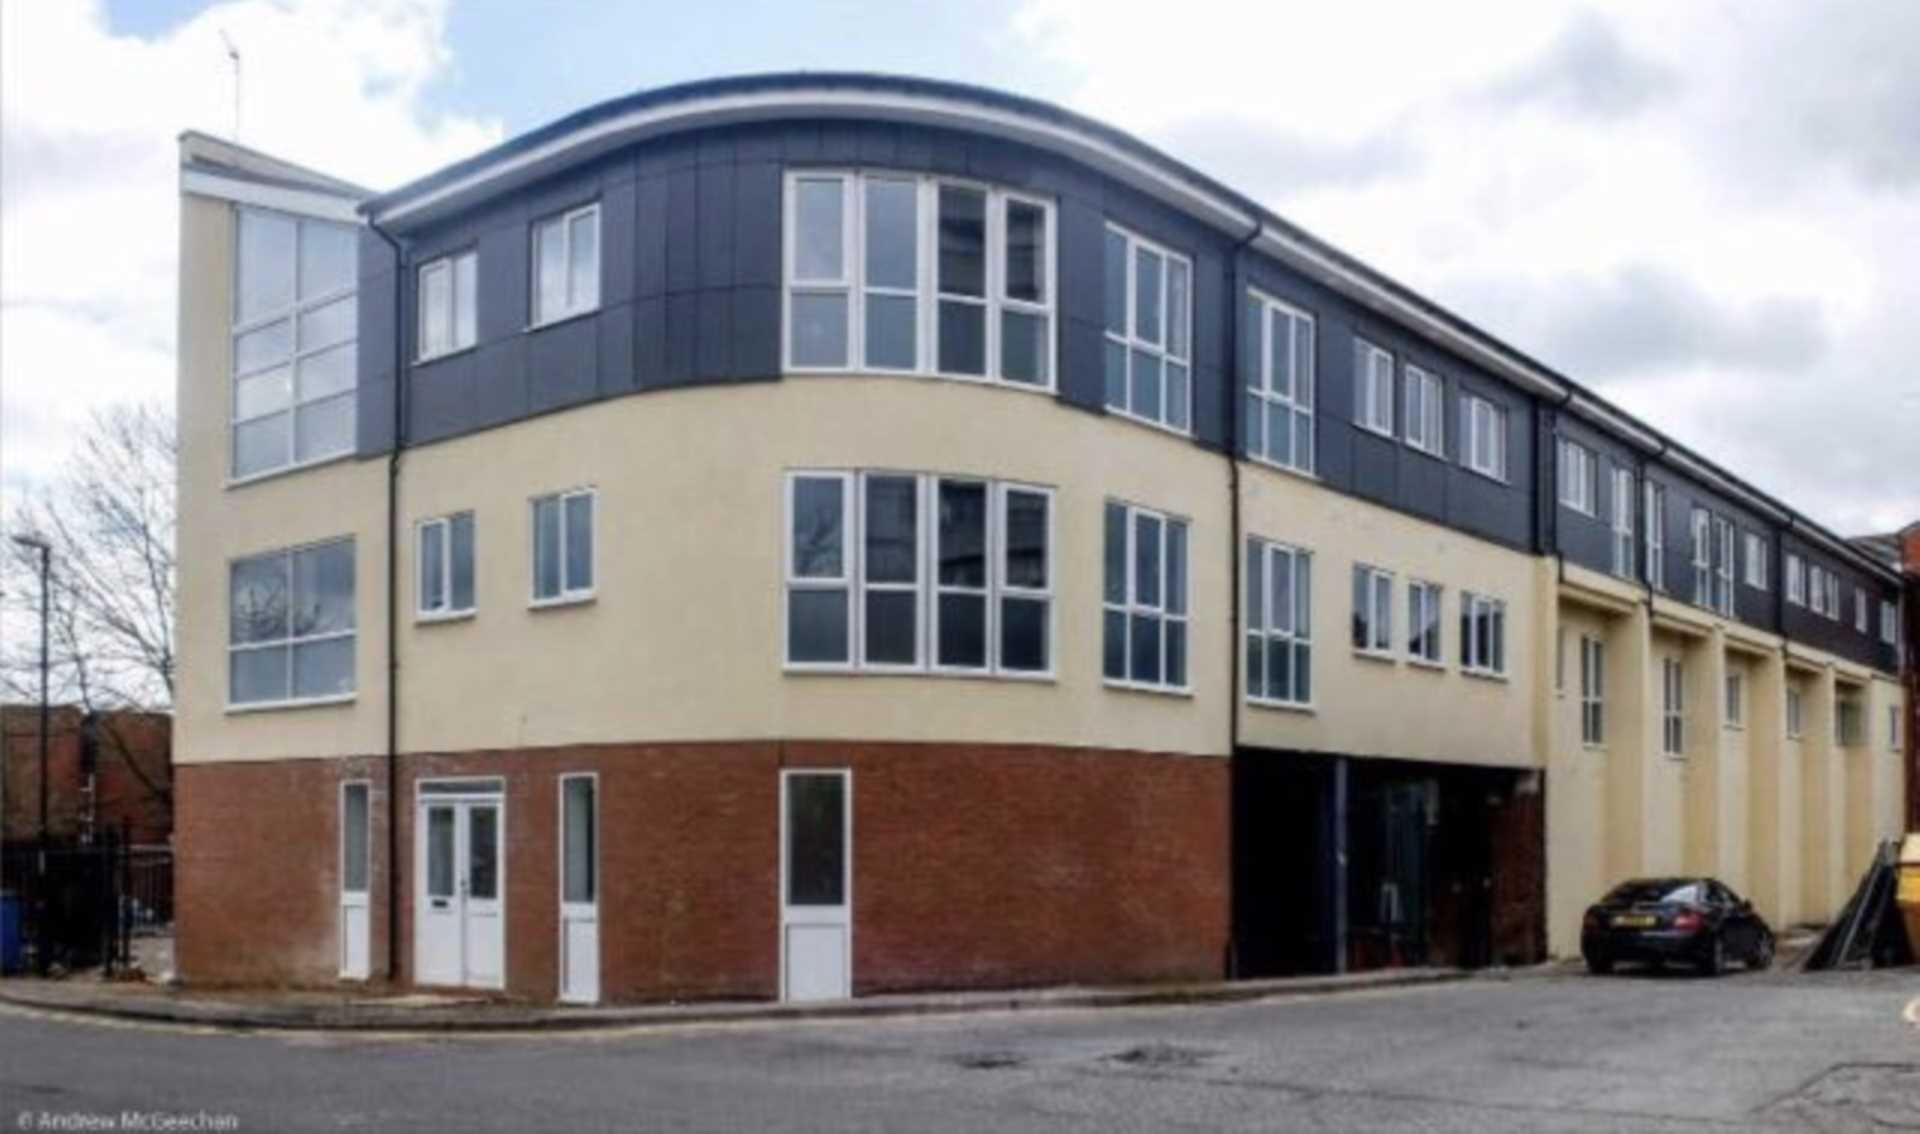 Room 1C Kings Court new development fully furnished student accommodation with en suite, all bills included - NO FEES, Image 3